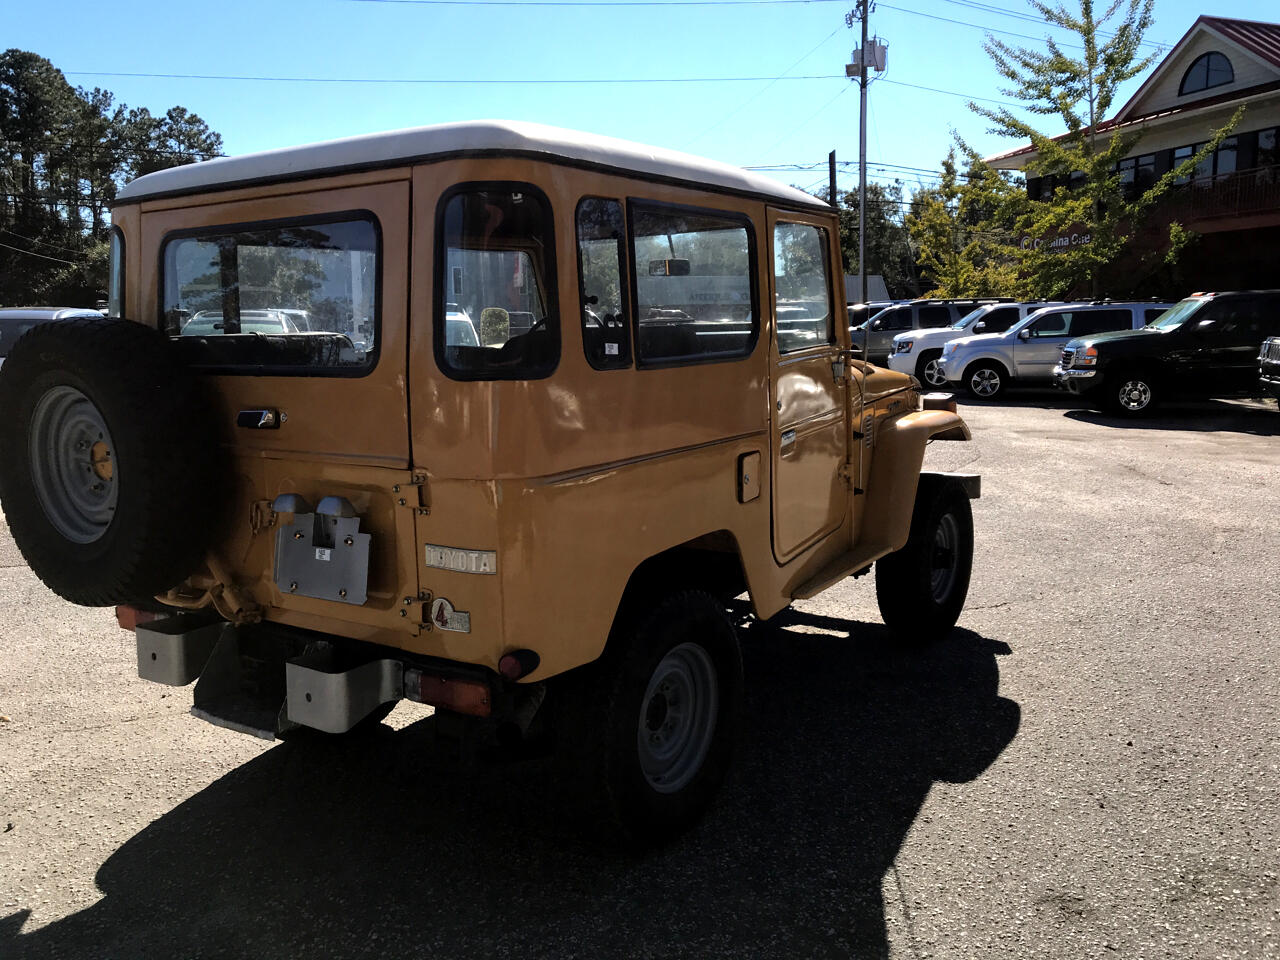 1981 Toyota Land Cruiser 4dr Wagon 4-Spd